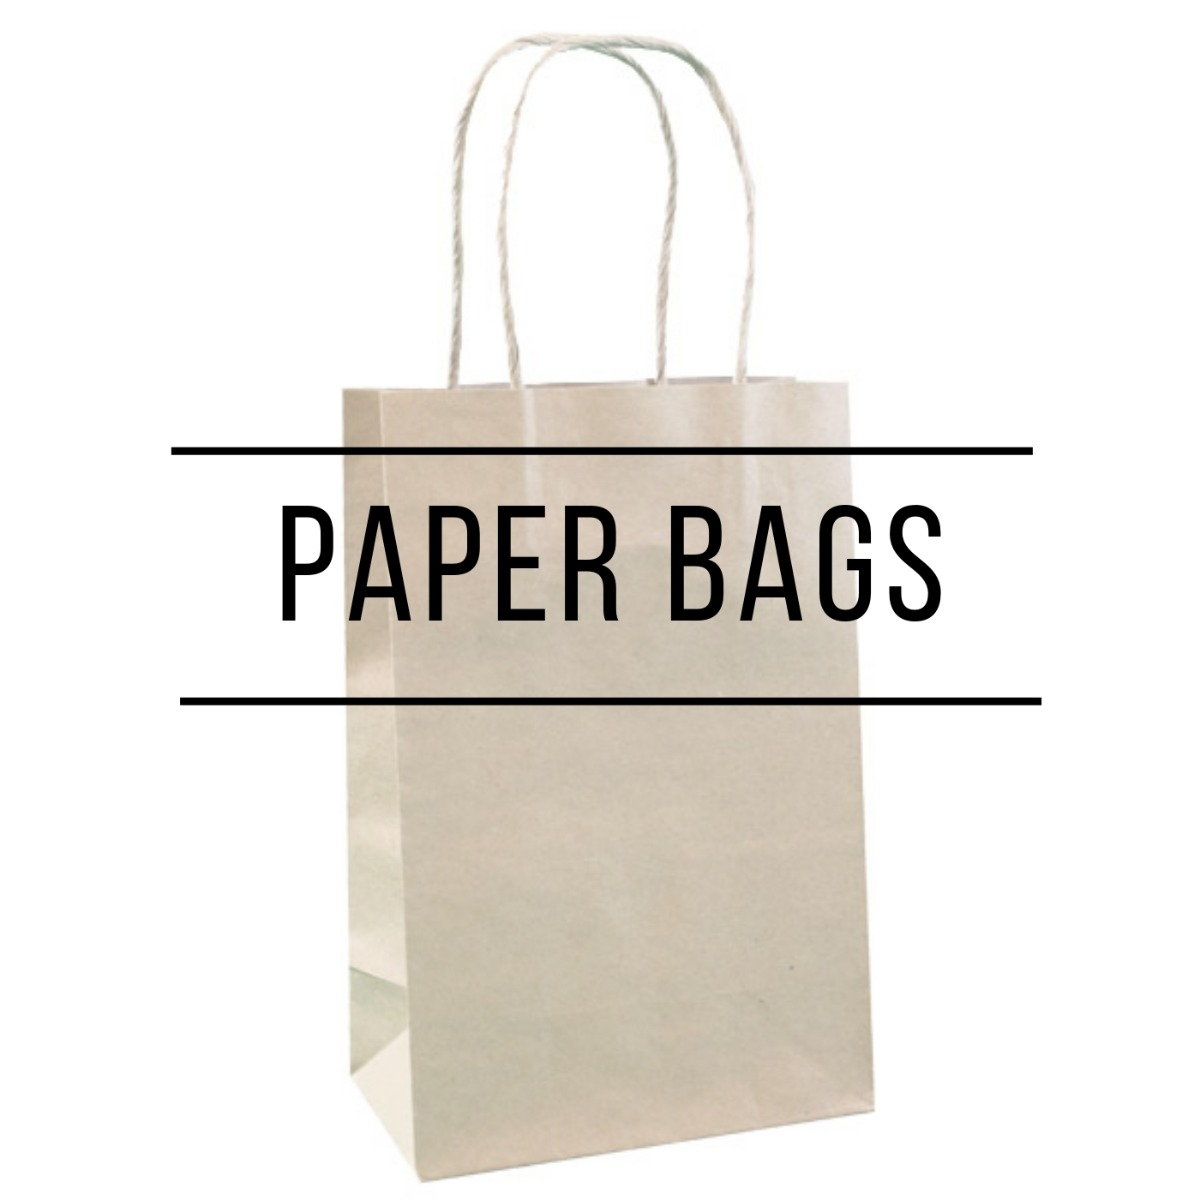 Paper bags in hawaii in multiple solid colors, ranging from Kraft to Laminated European Tote Style Bags.